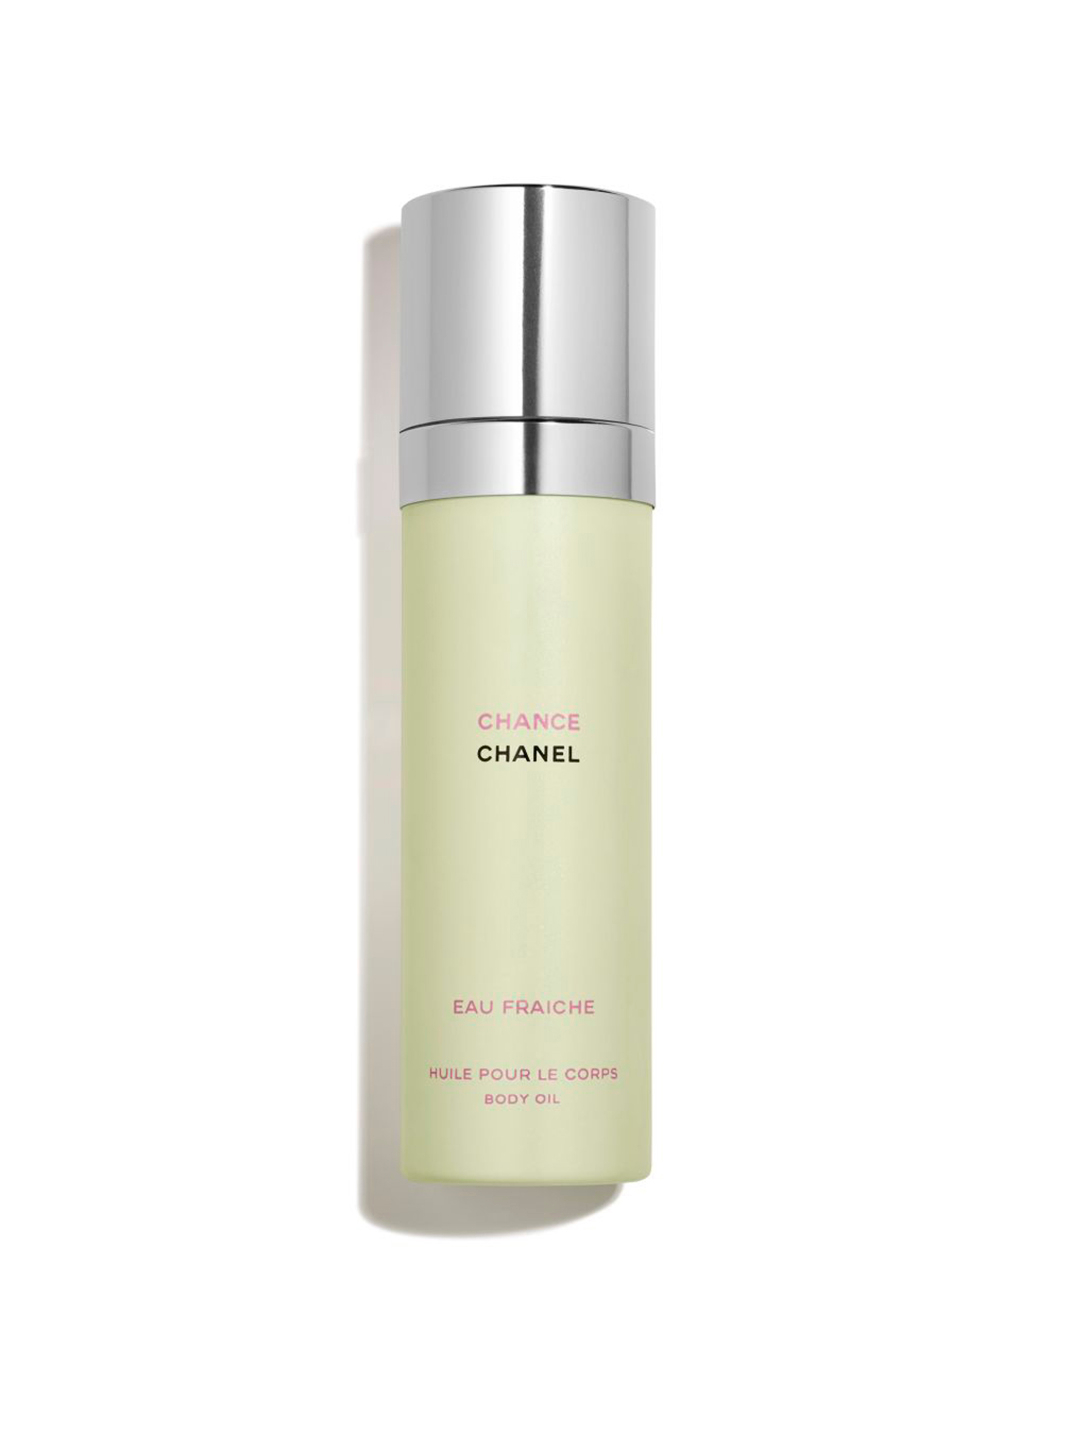 CHANEL Body Oil - Limited Edition CHANEL